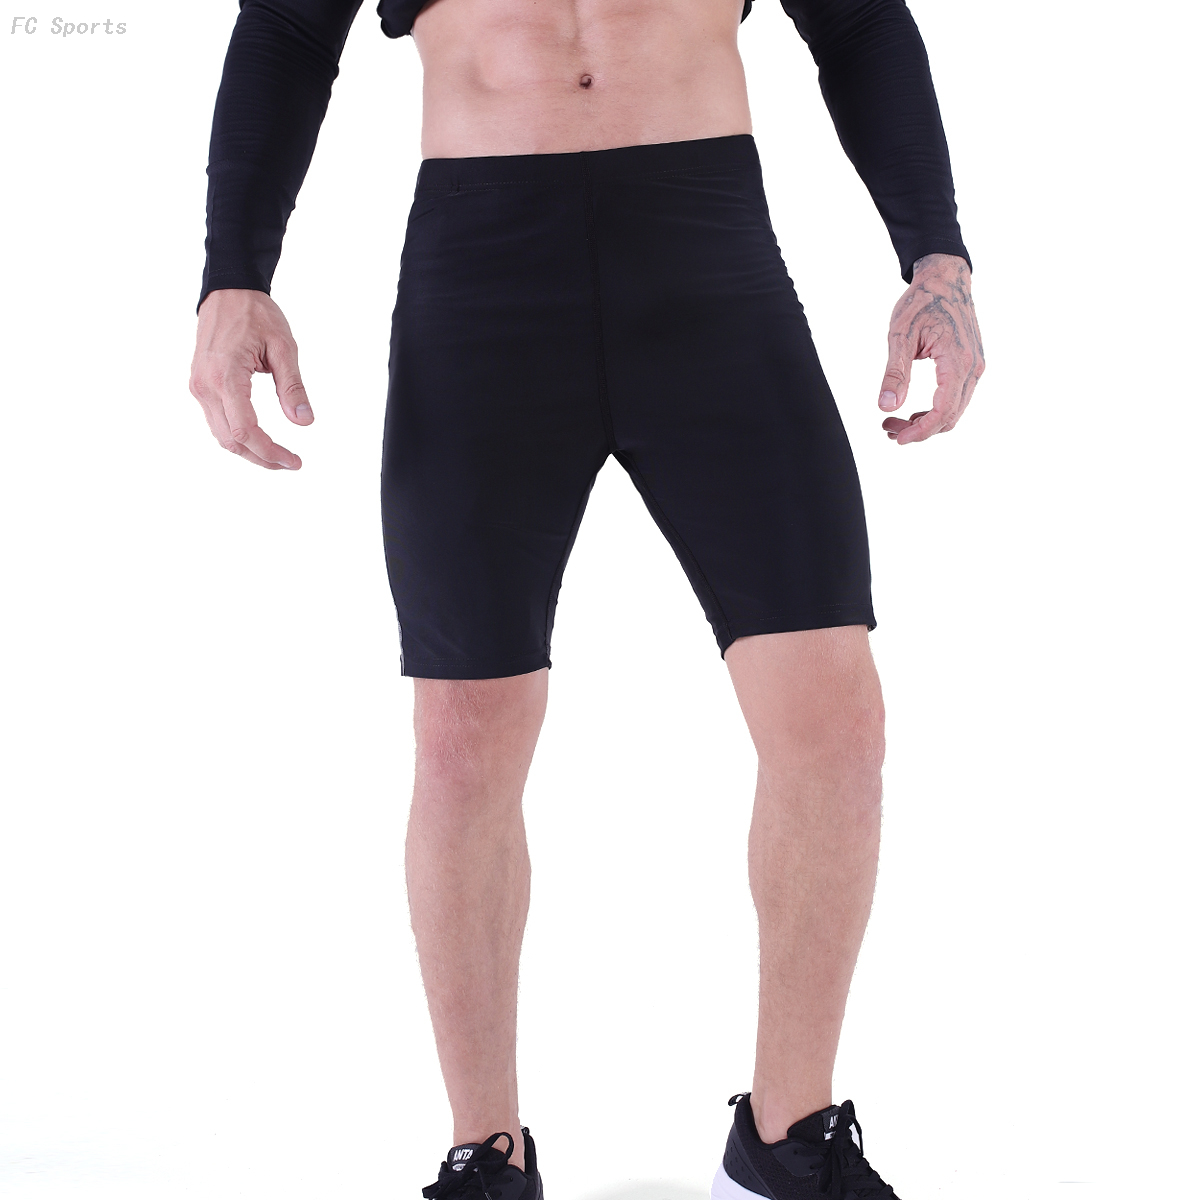 Men's Gym Training Running Shorts Knitted Workout